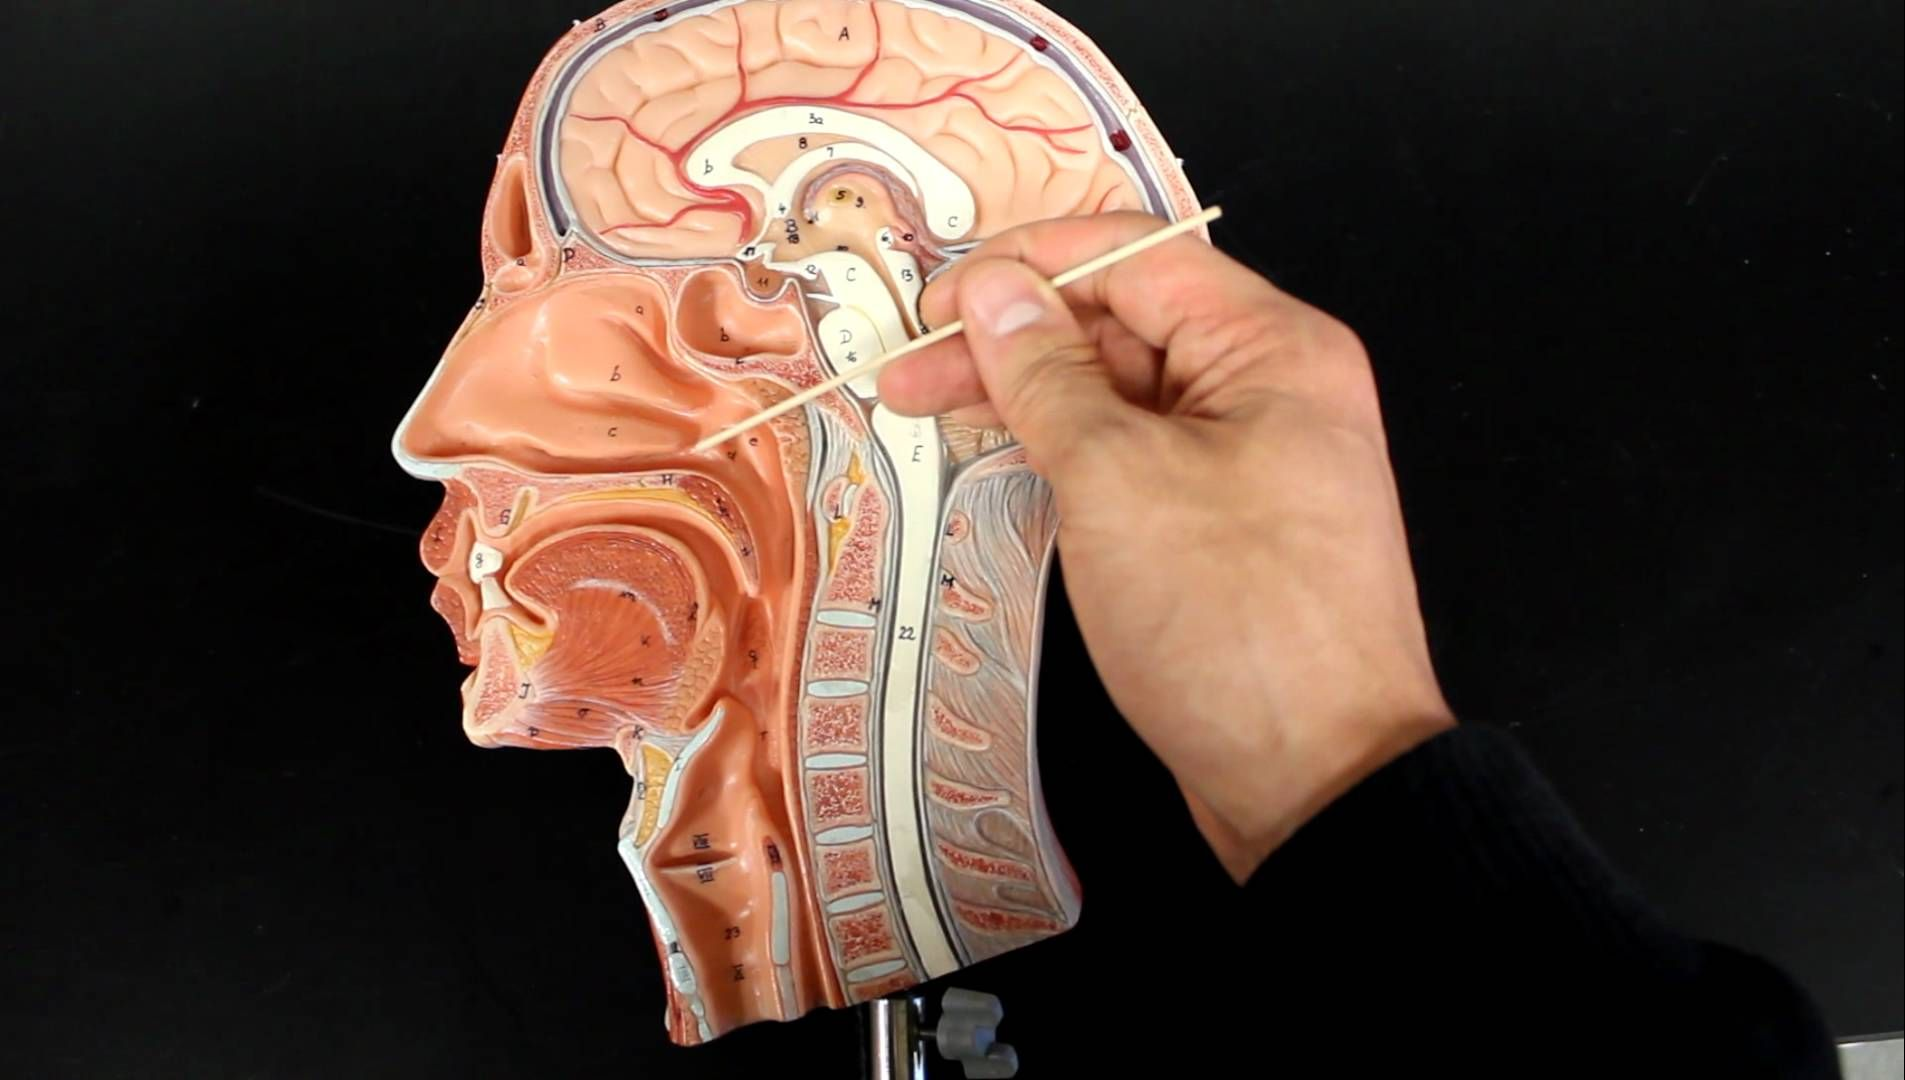 Short video describing the flow of air from the nose to the larynx ...